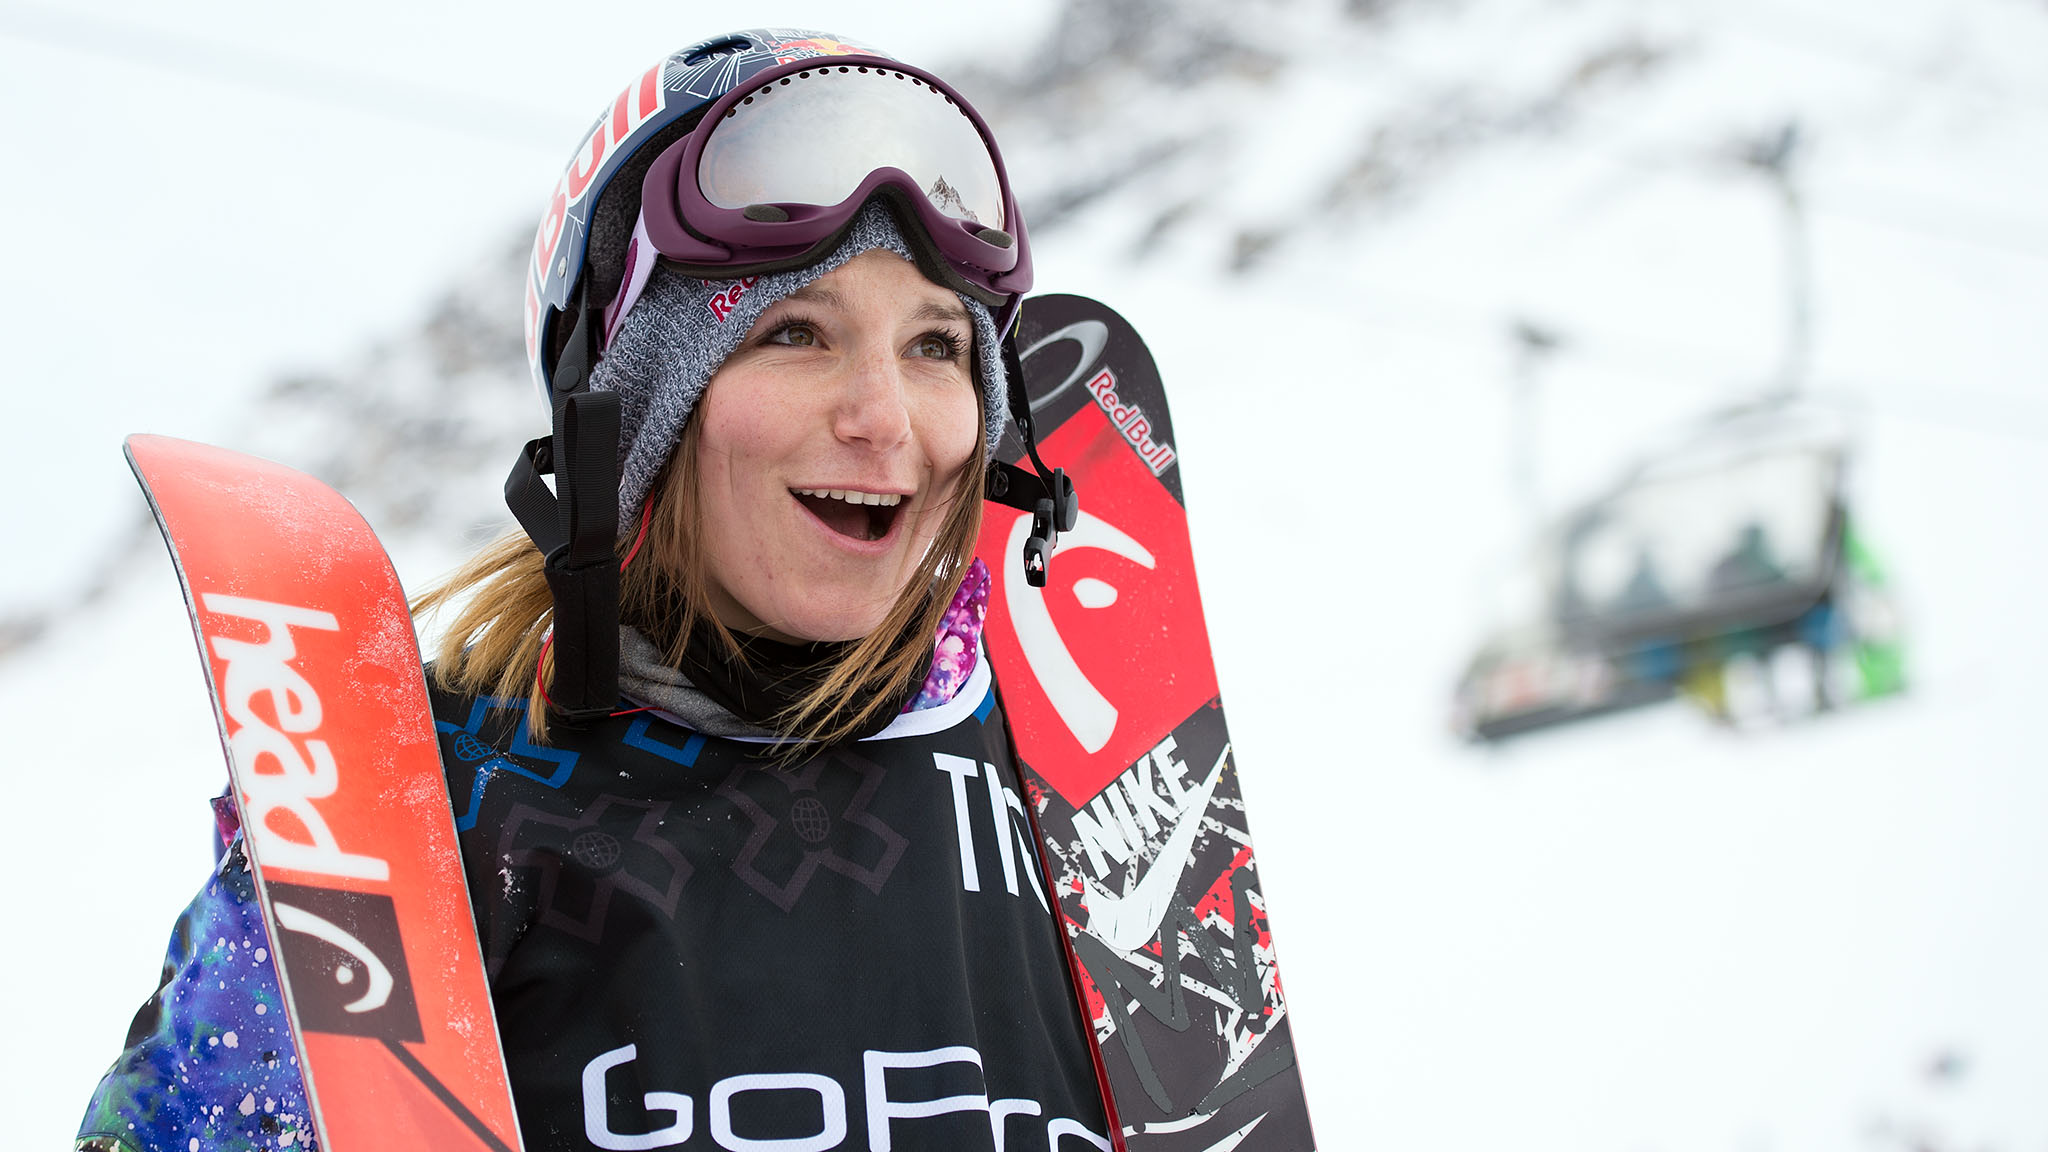 Once again Kaya Turski topped the podium in Women's Ski Slopestyle, earning her fourth consecutive gold medal in Tignes.